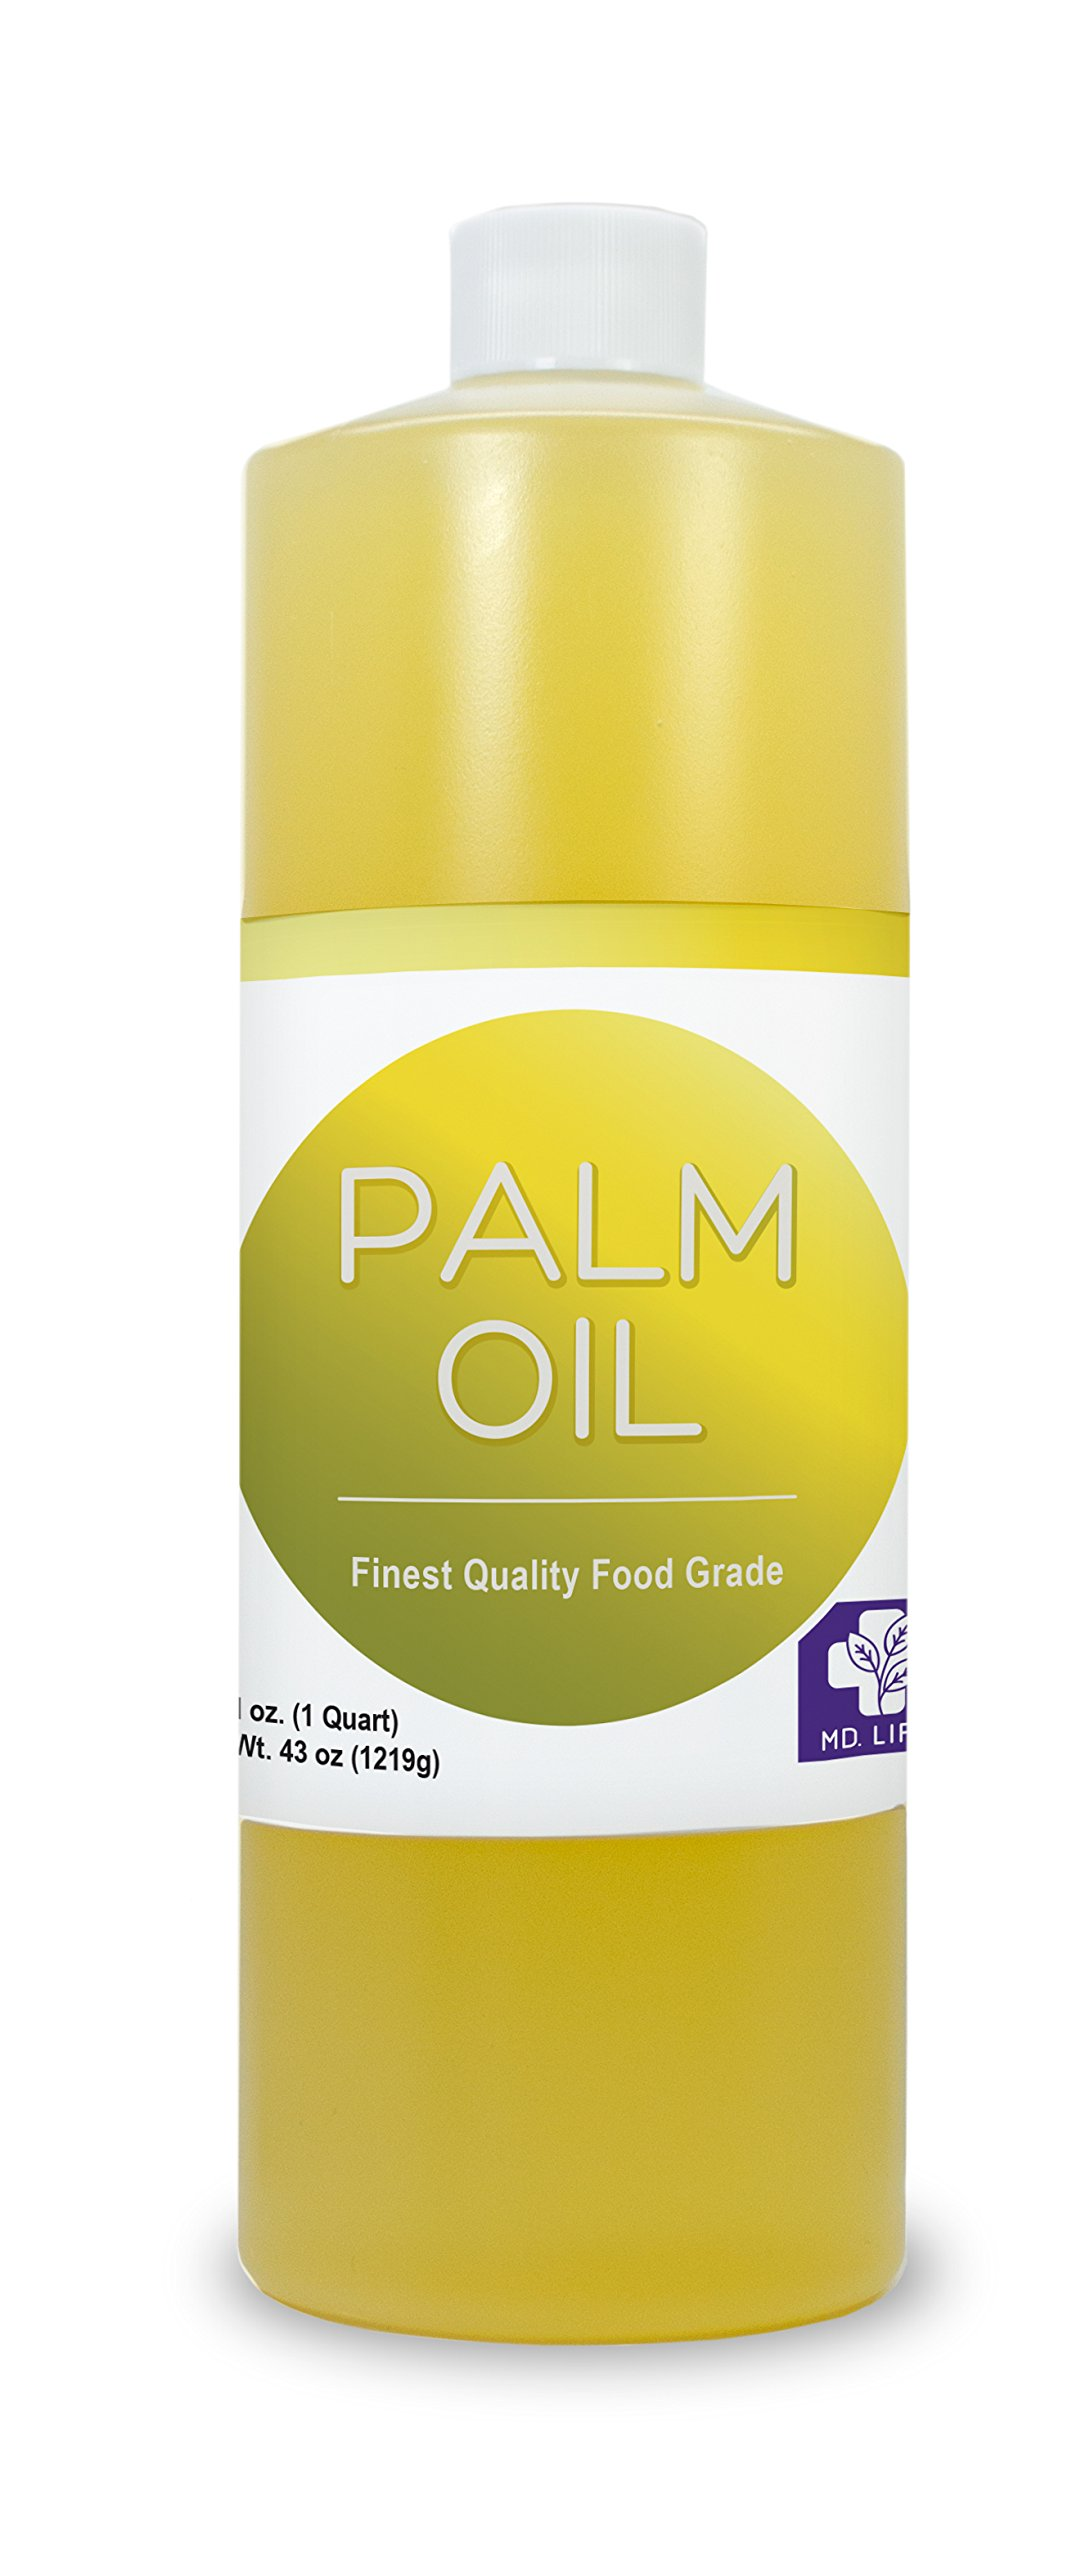 MD.LIFE PALM OIL - 32oz